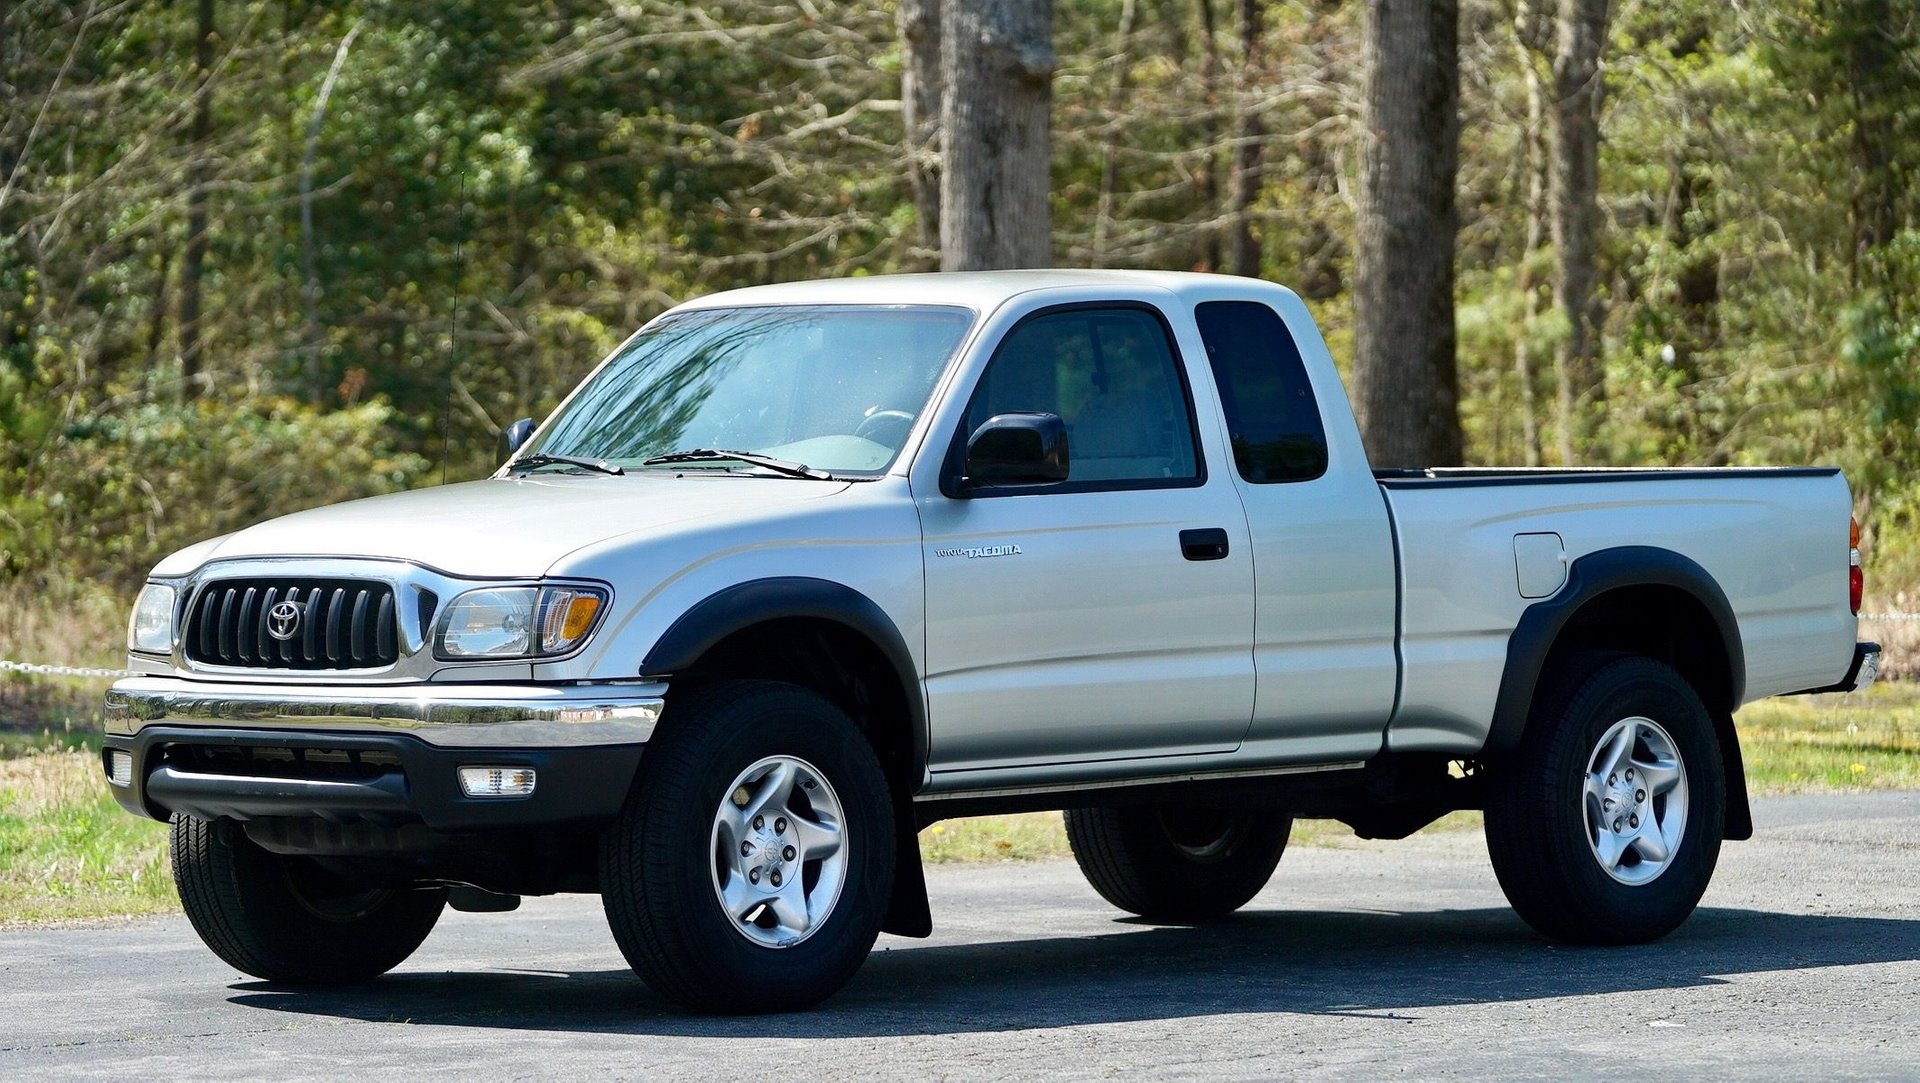 2004 toyota tacoma xtracab prerunner sr5 4cyl